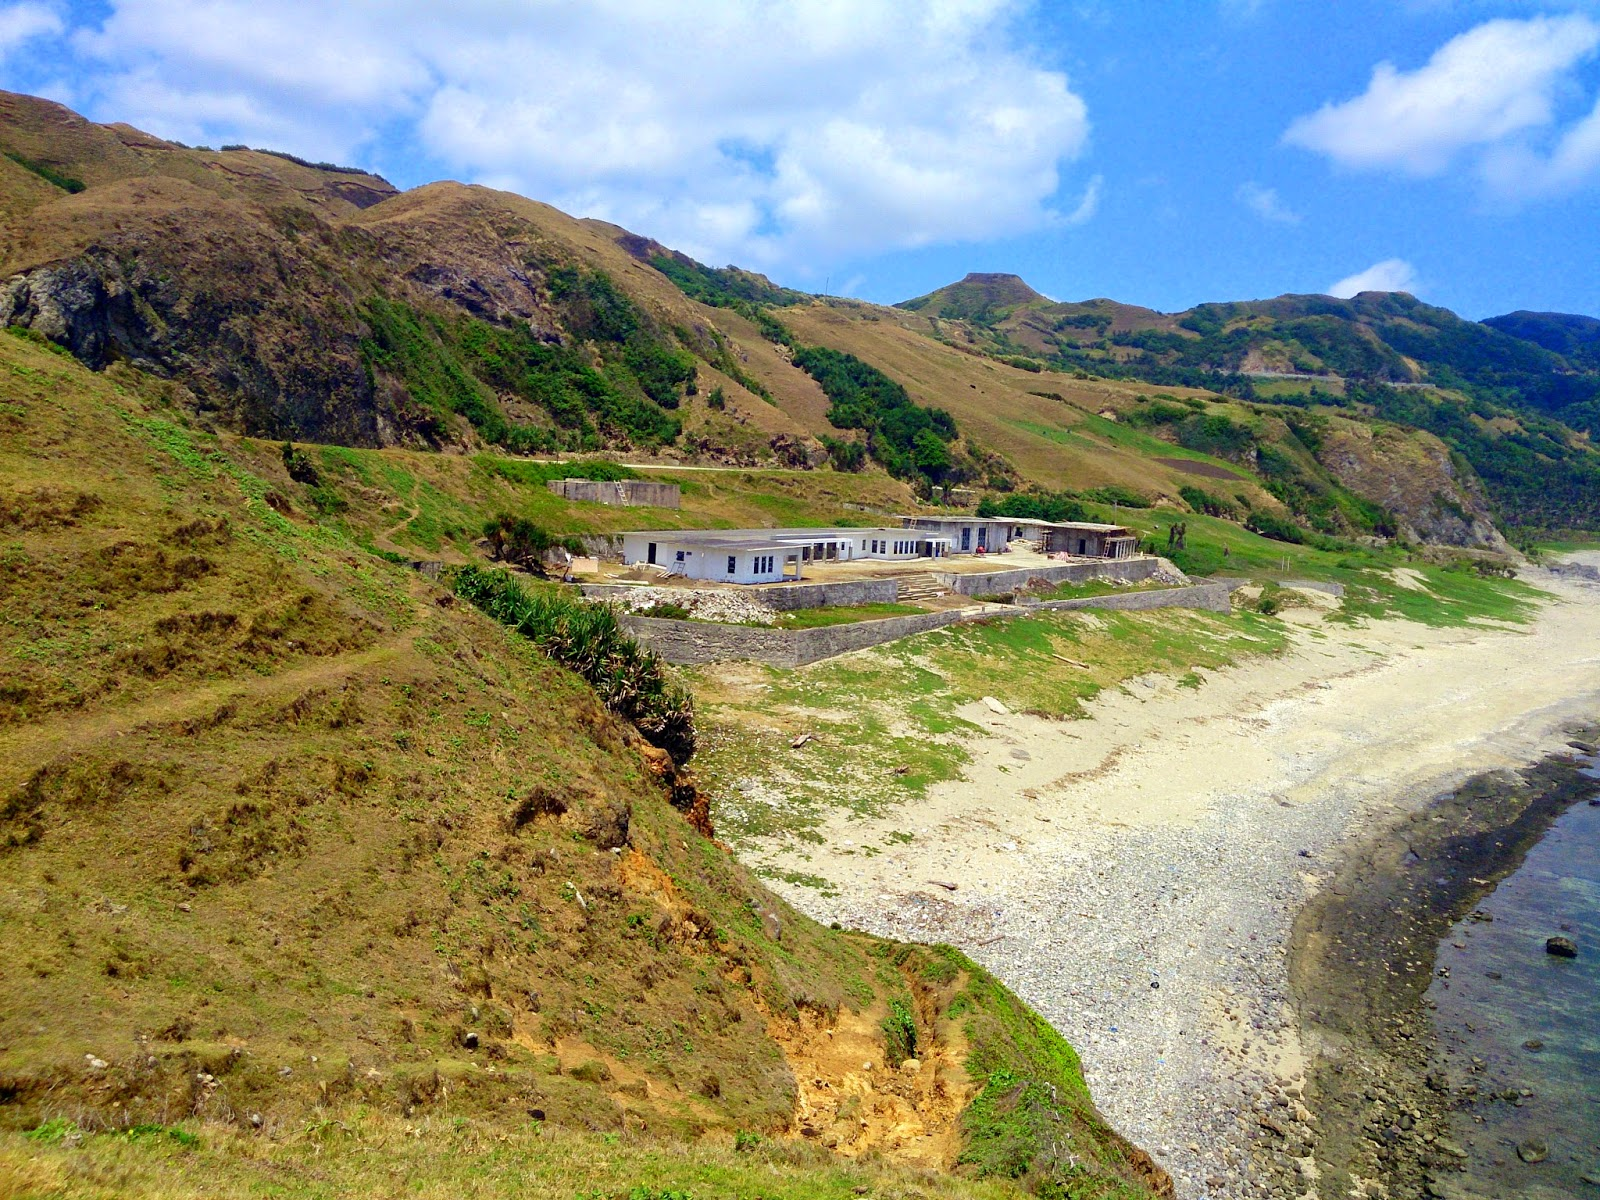 LORAN Station, South Batan, Batanes